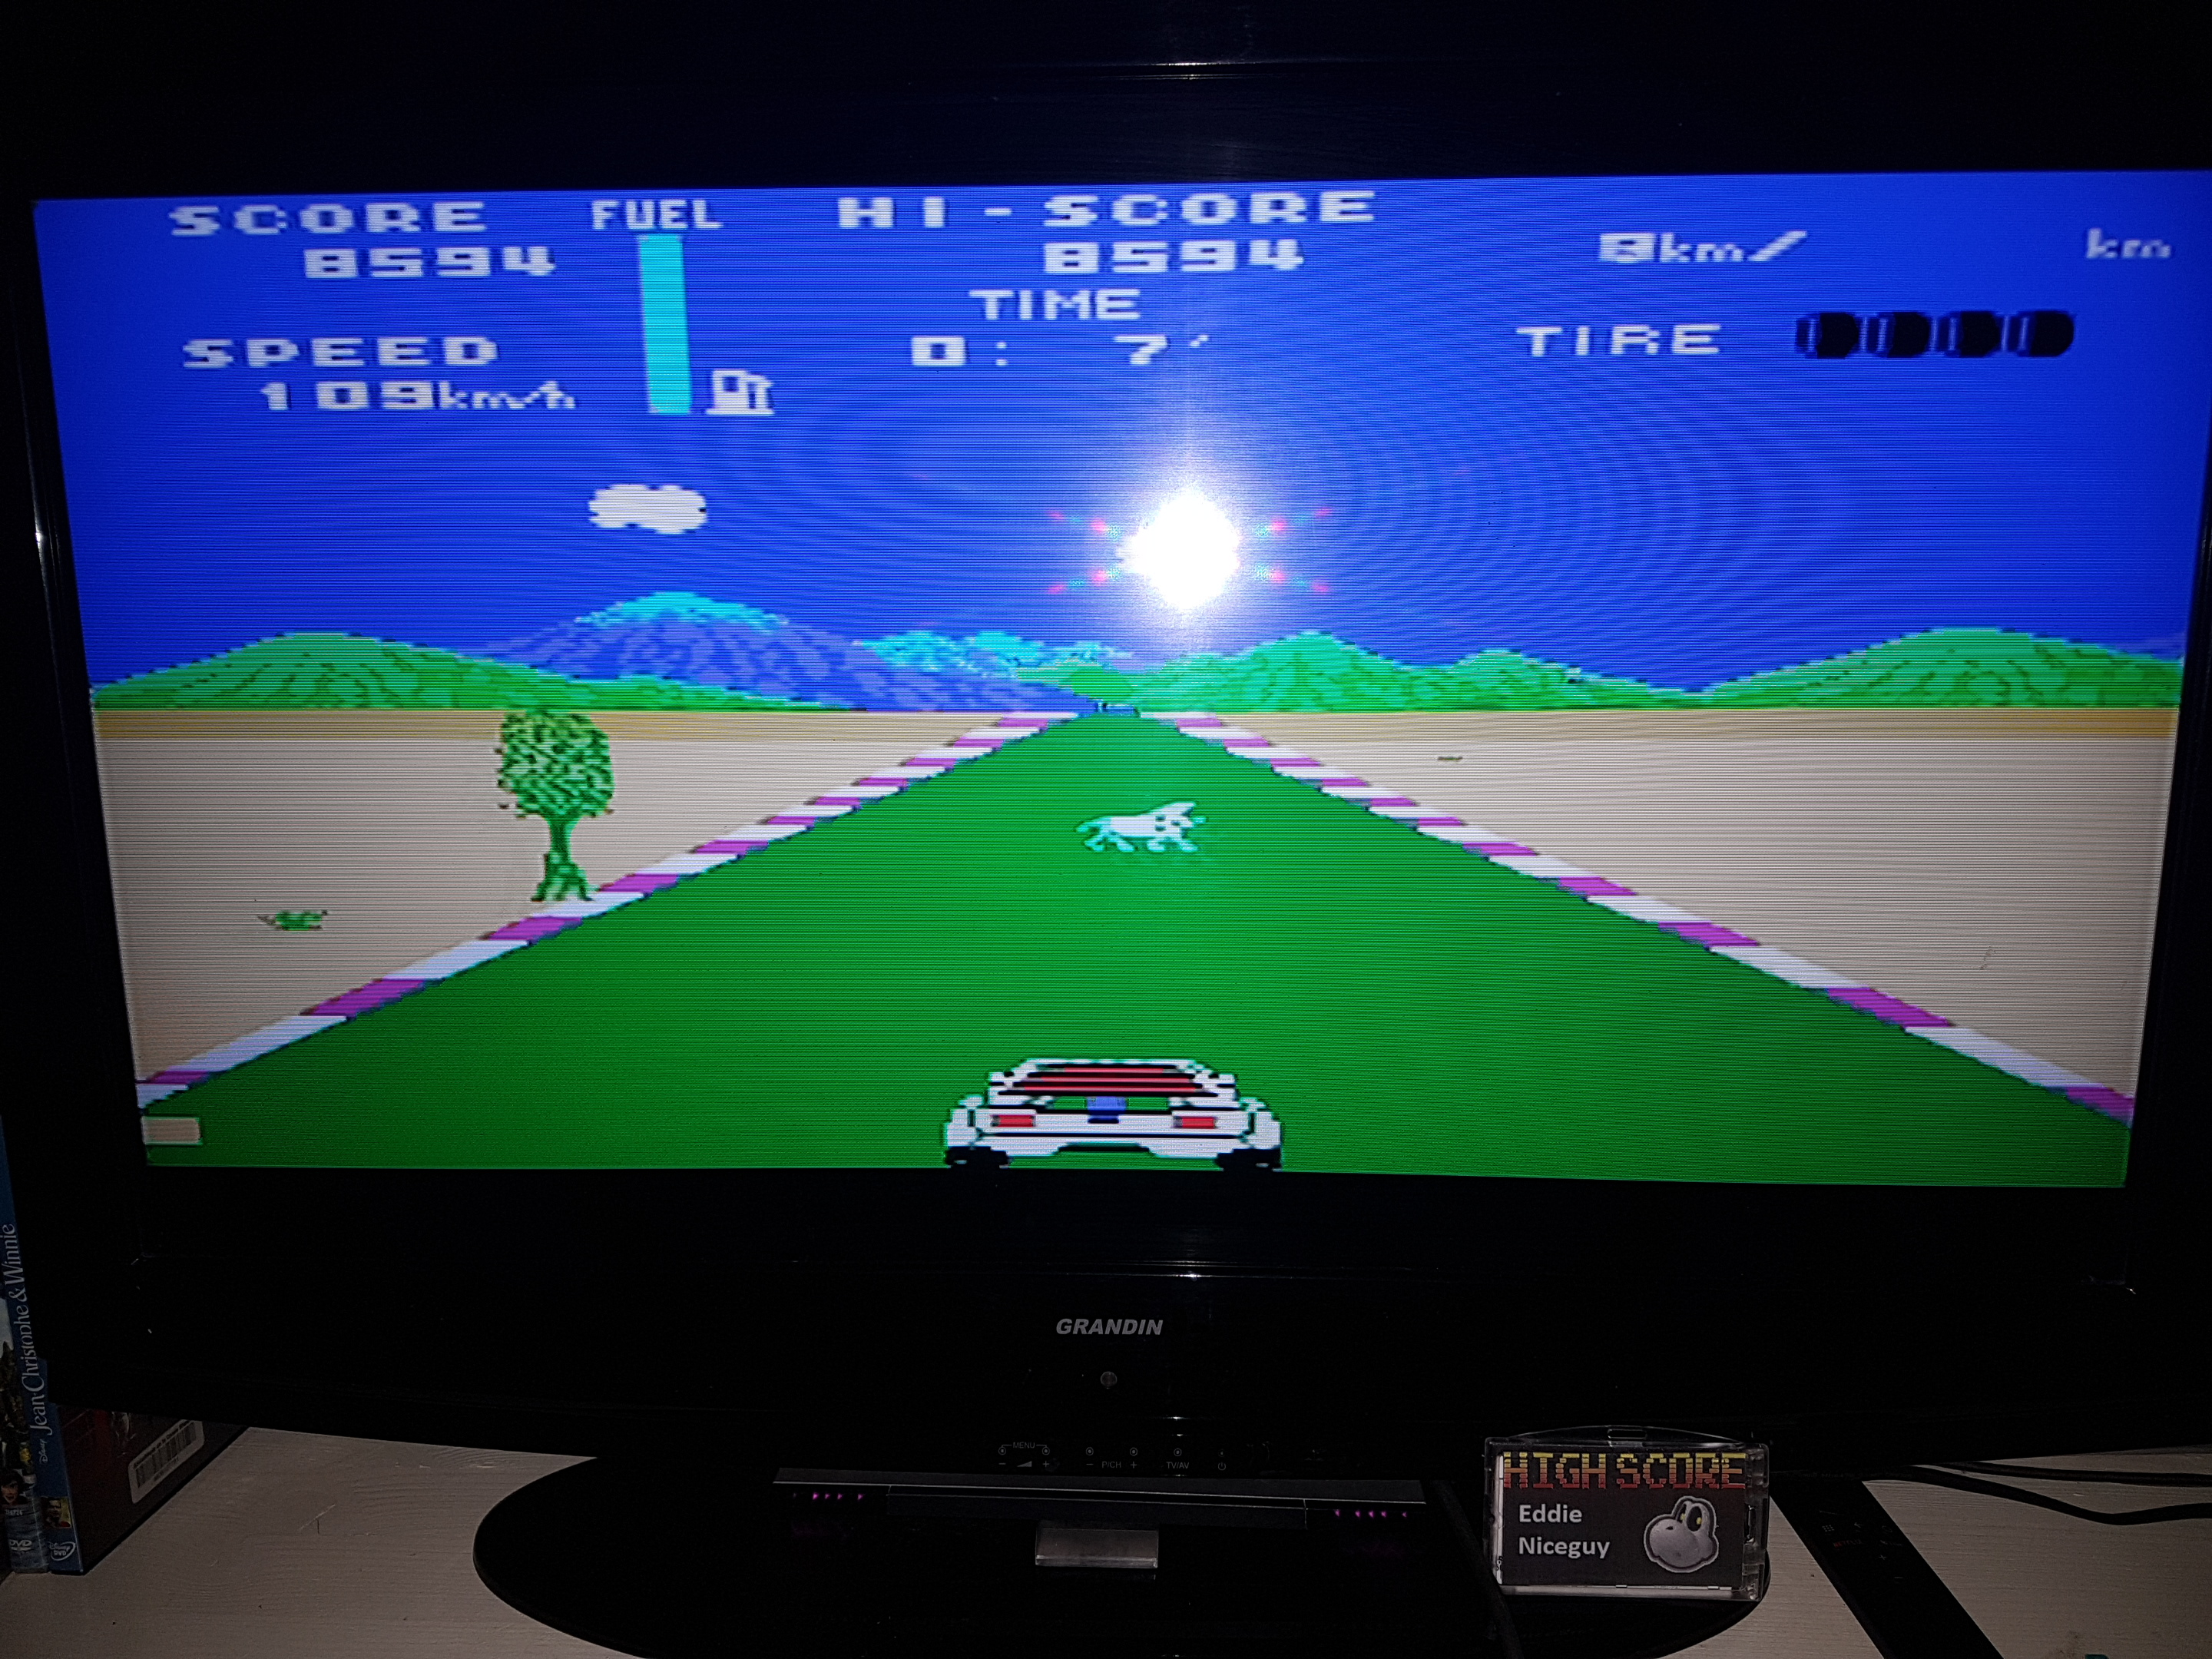 EddieNiceguy: Safari Race (Sega SG-1000 Emulated) 8,594 points on 2019-04-26 16:49:25